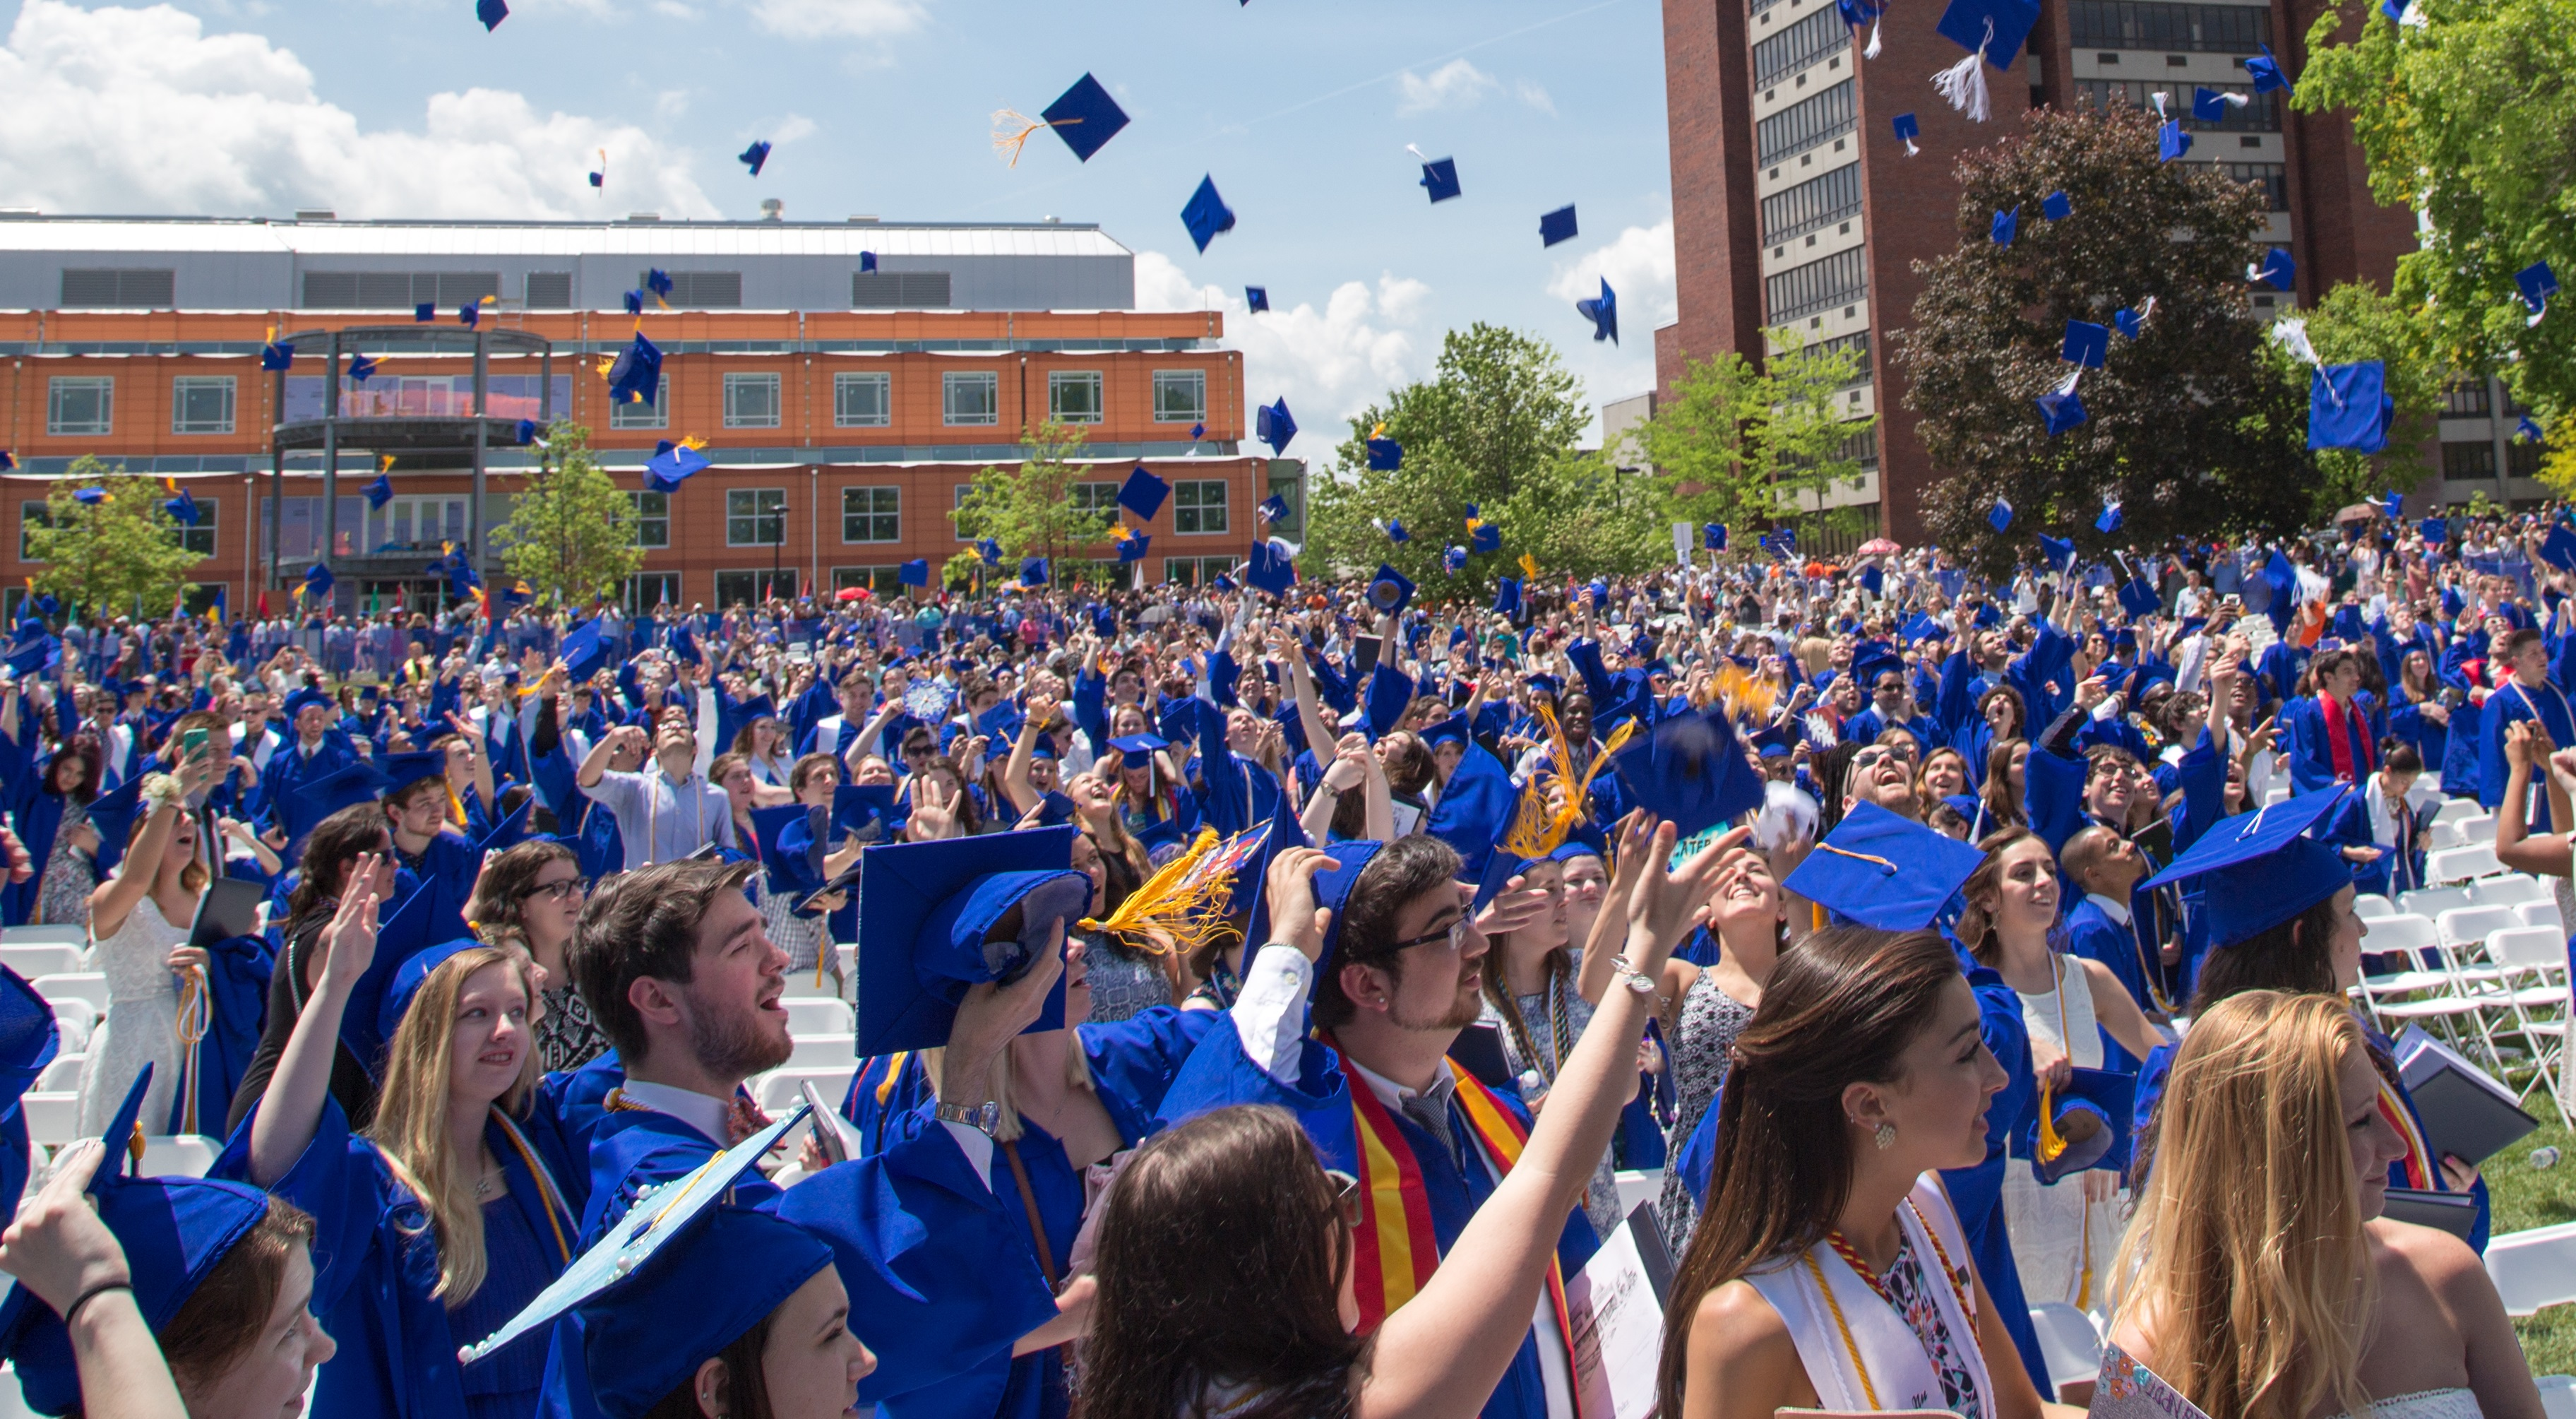 College to celebrate Commencement – SUNY New Paltz News